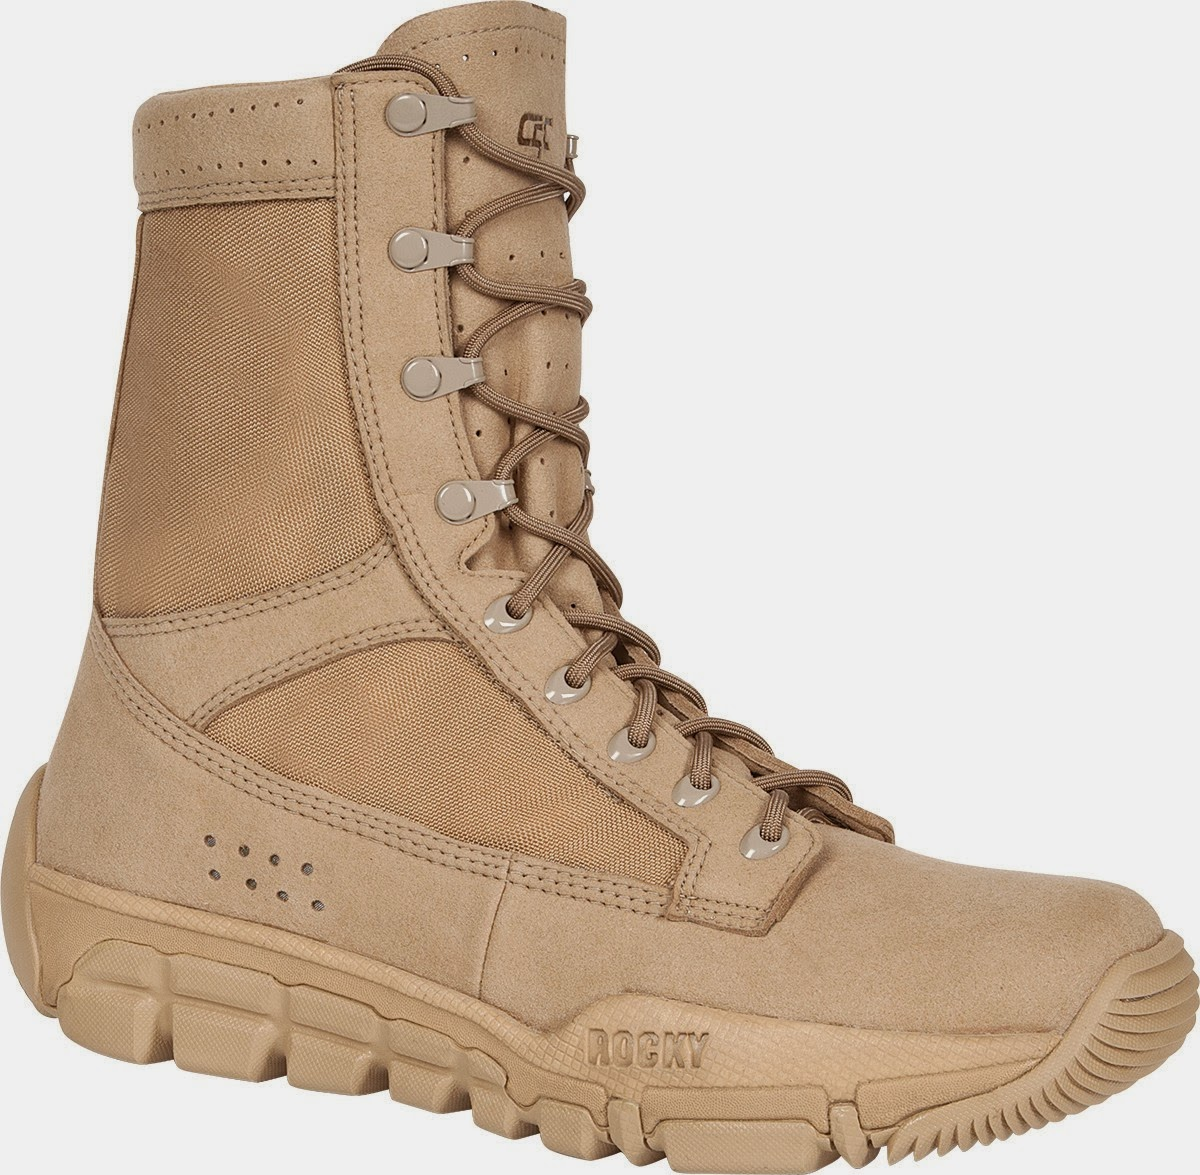 Top 3 Military-Issue Boots That Meet ACU Regulations | Army ...